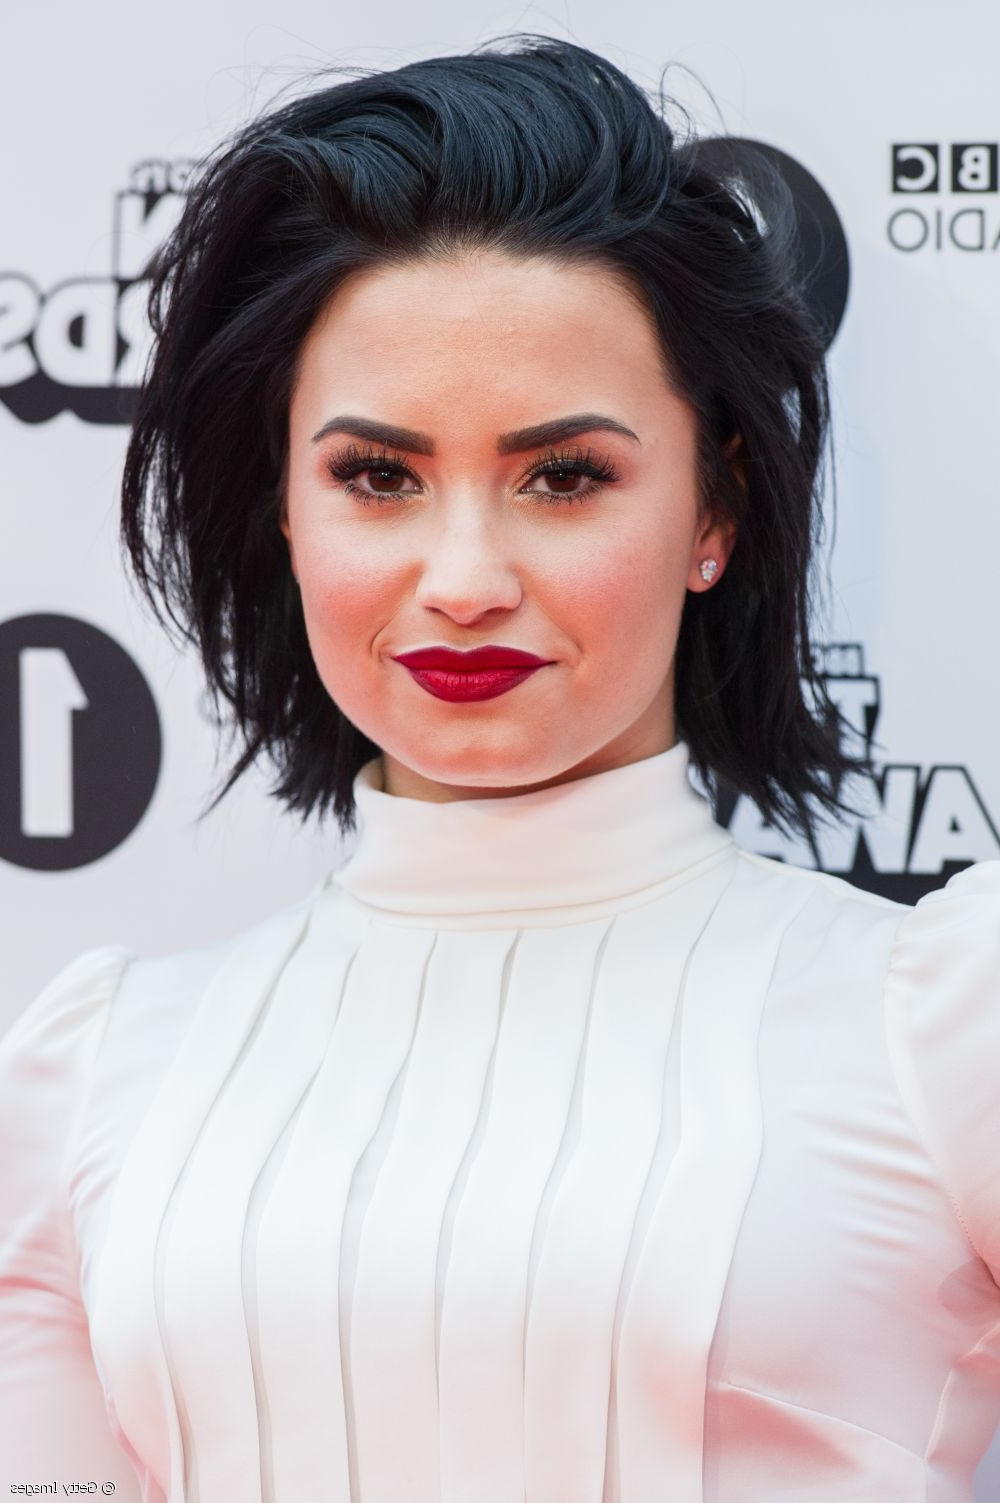 Demi Lovato Goes High Glam: Get Her Red Lipstick + Xxl Lashes Makeup! regarding Demi Lovato Short Hairstyles